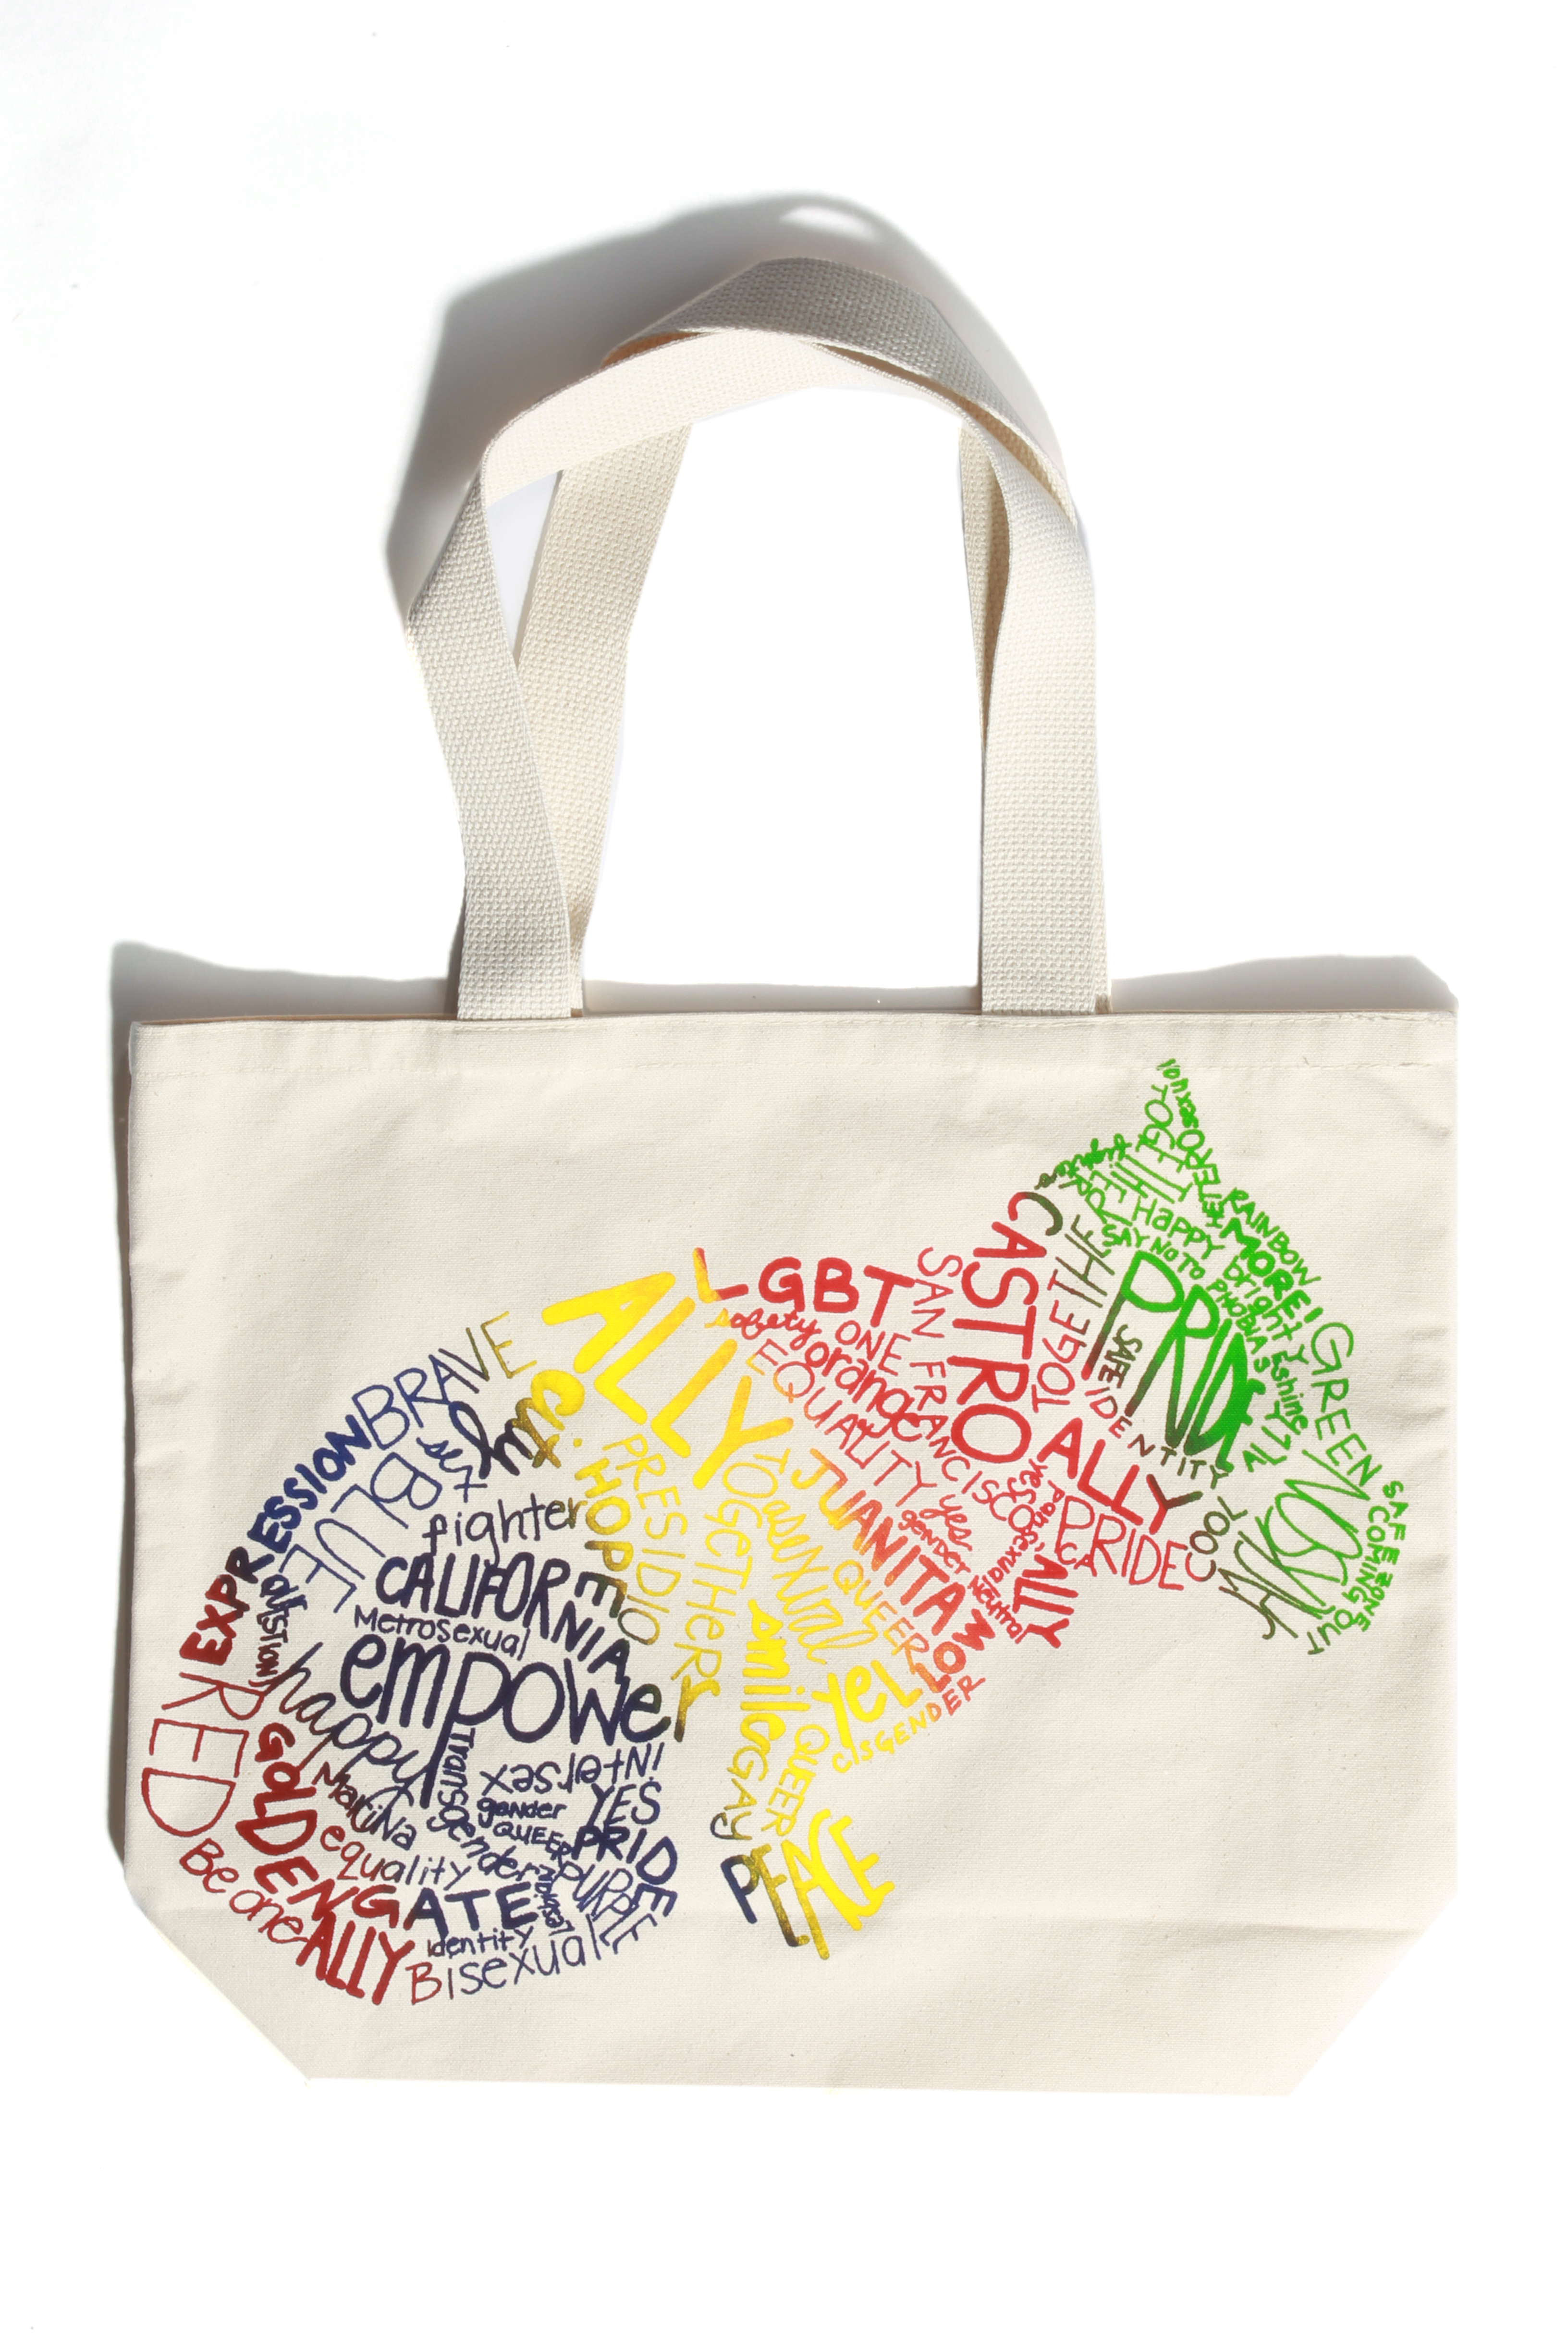 A tote design featuring Juanita MORE!'s dog, . Photo by Bob Toy.